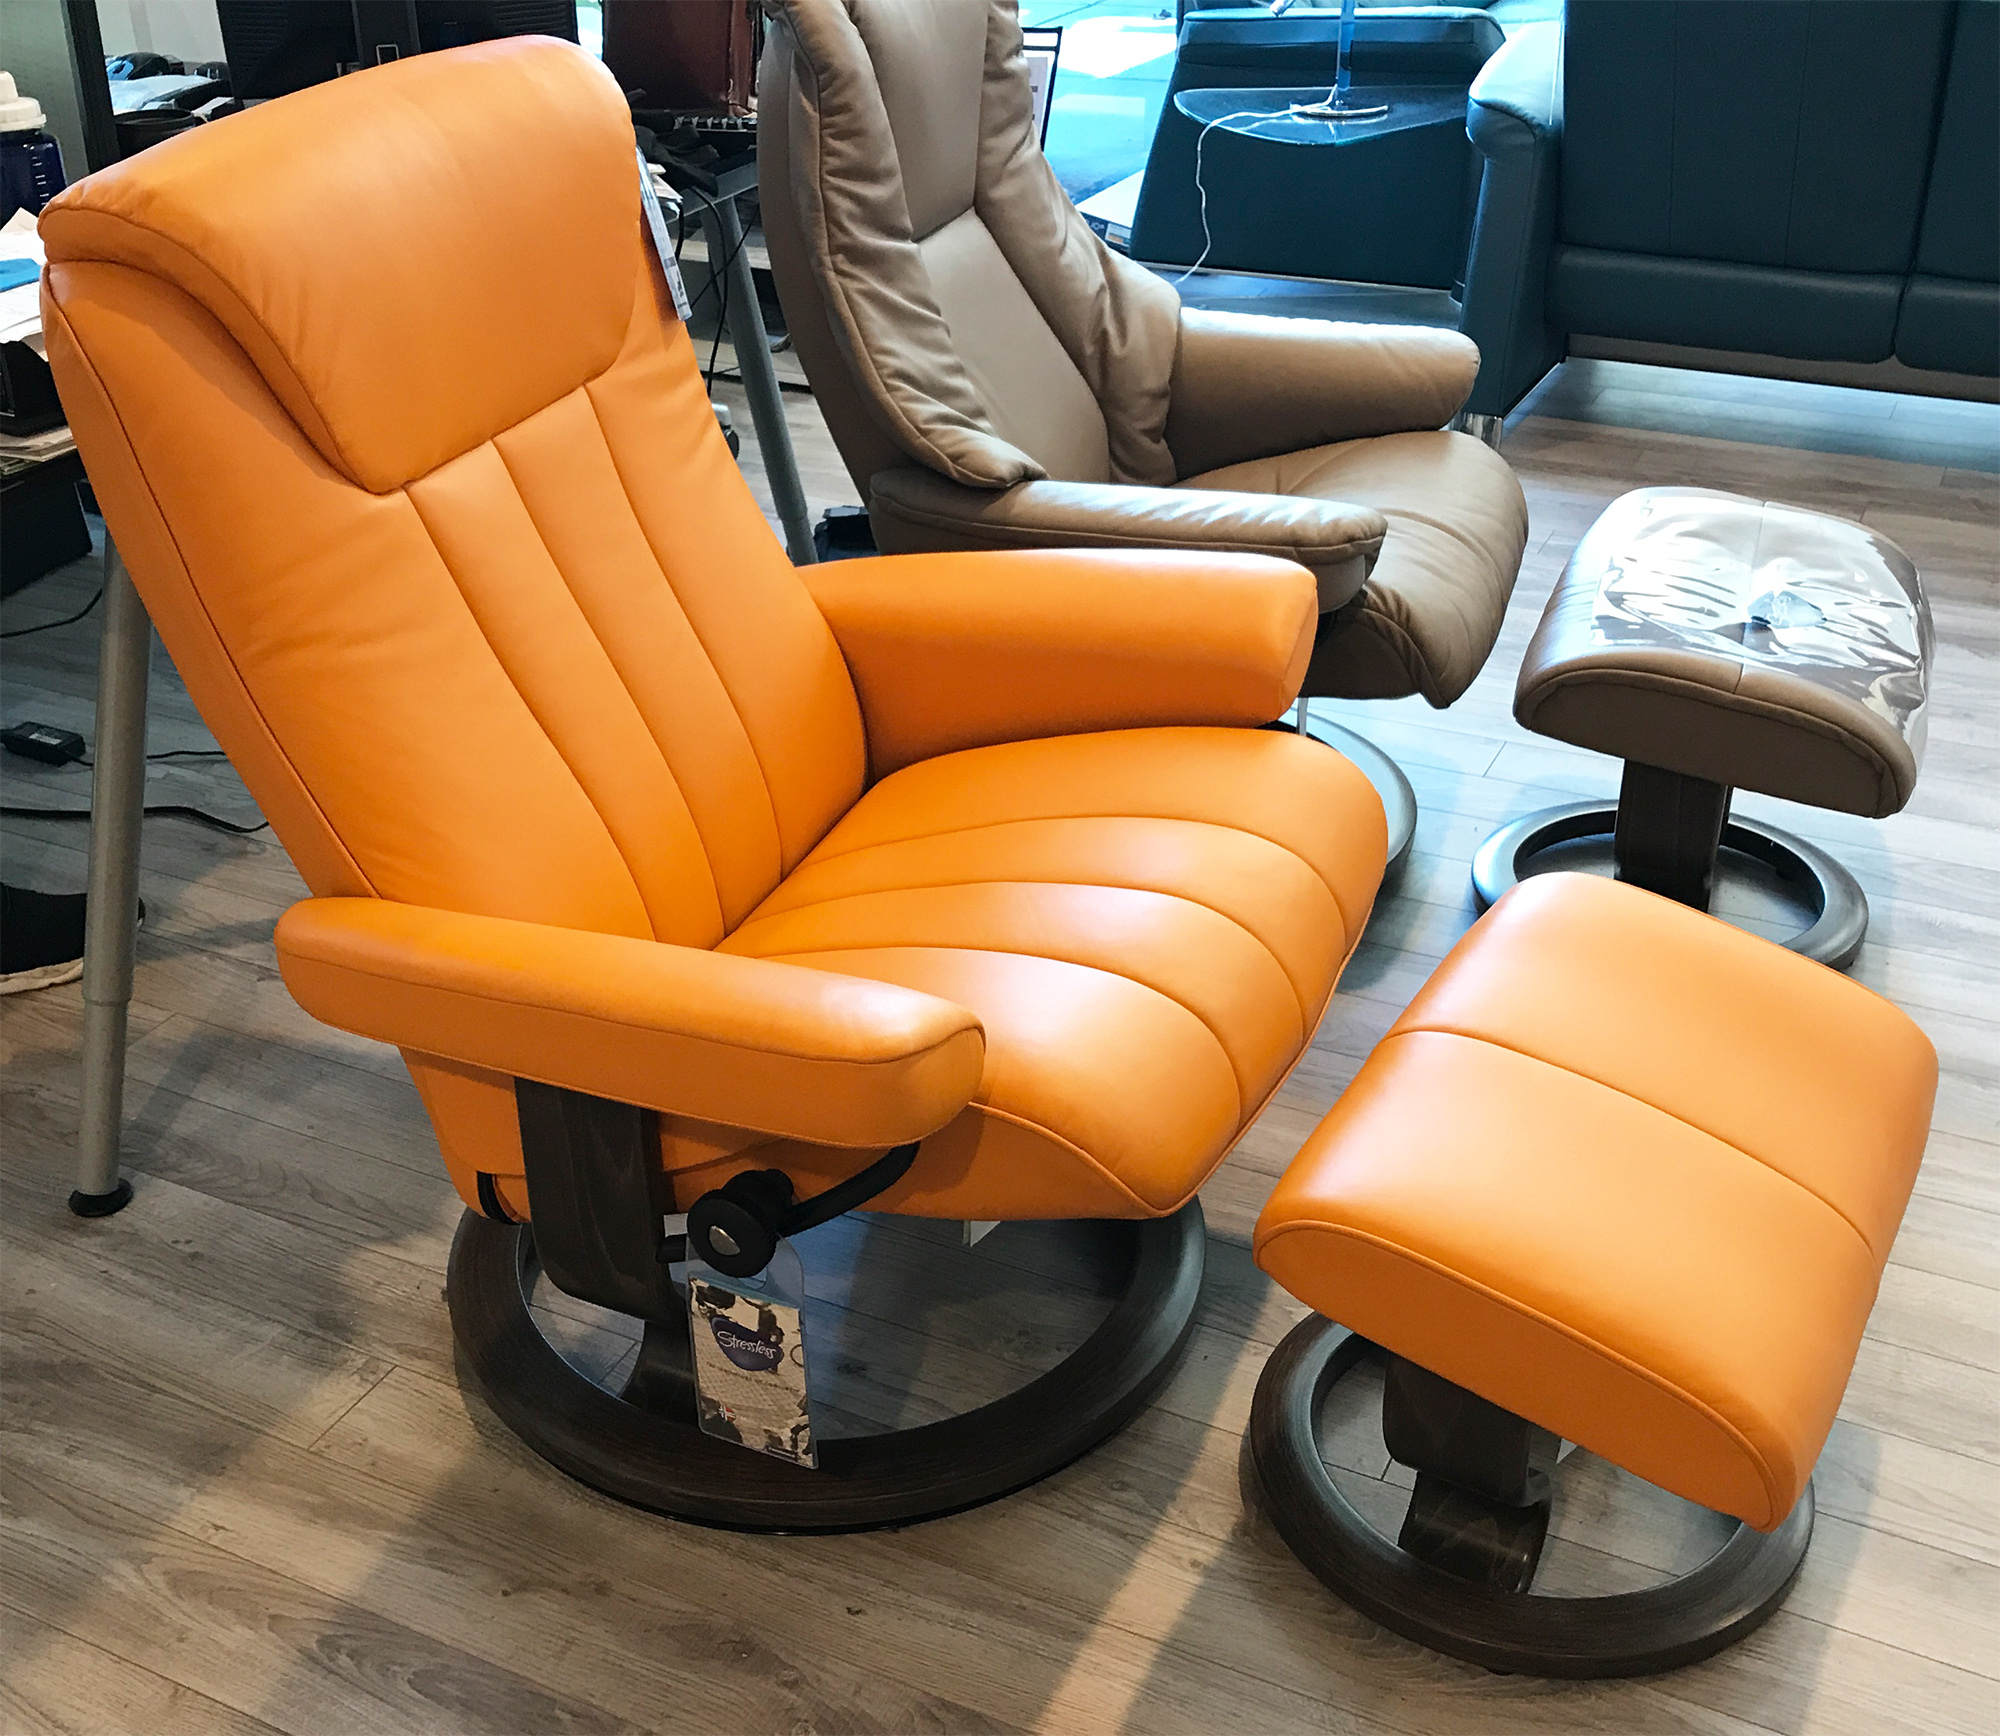 Leather Chairs With Ottoman Stressless Bliss Paloma Clementine Leather Recliner Chair By Ekornes